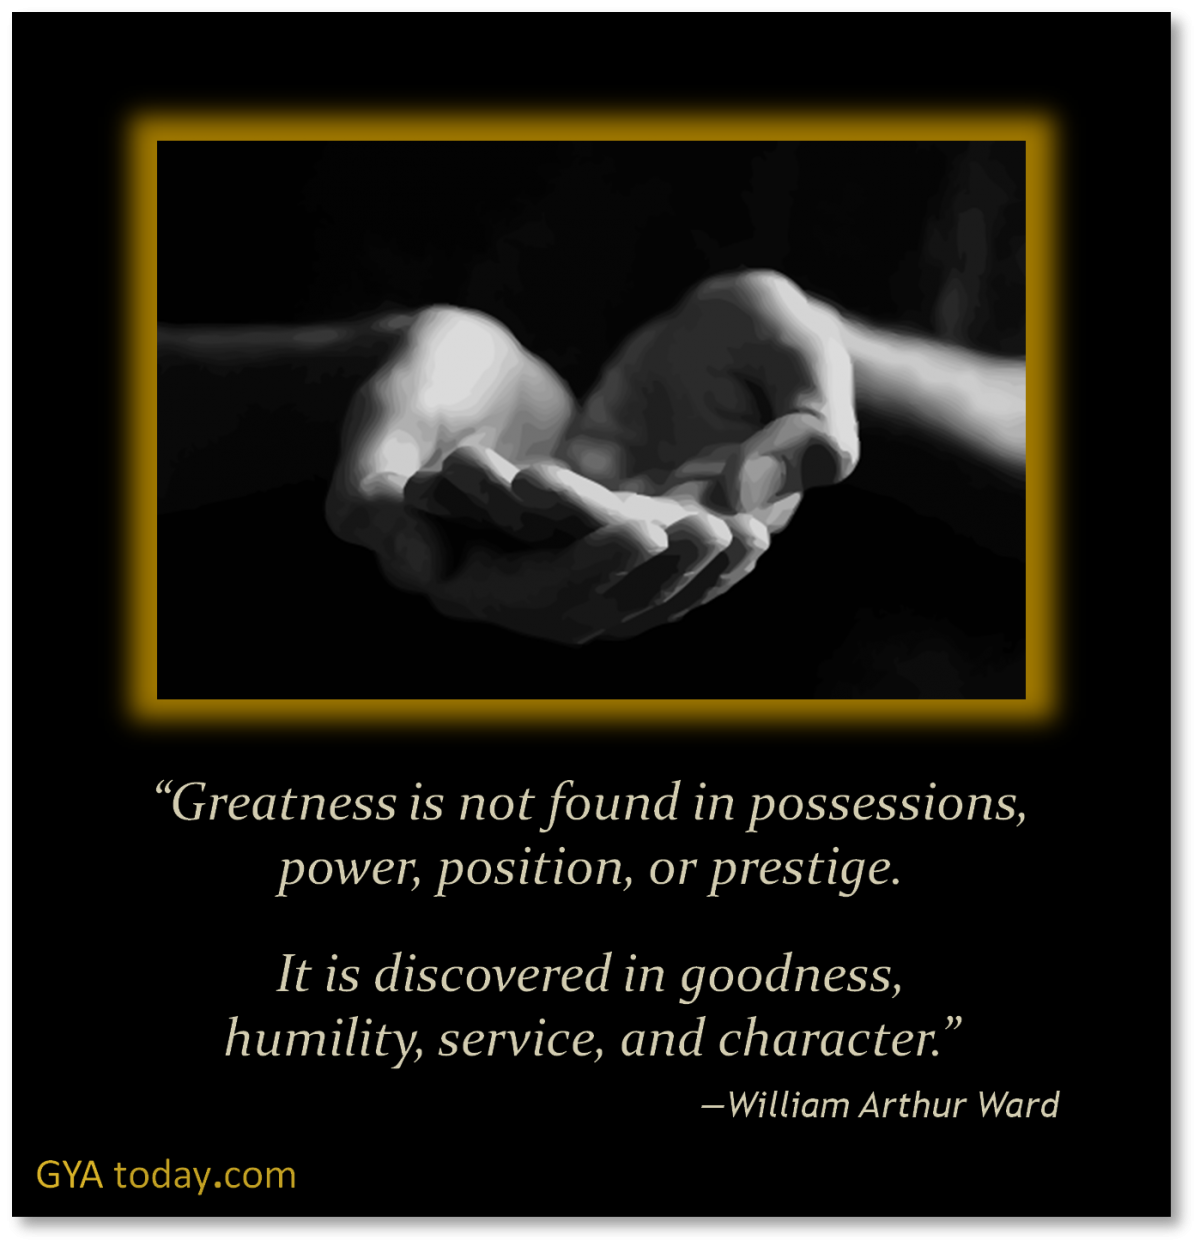 Finding Greatness Inspirational Quotes Great Inspirational Quotes Quotable Quotes